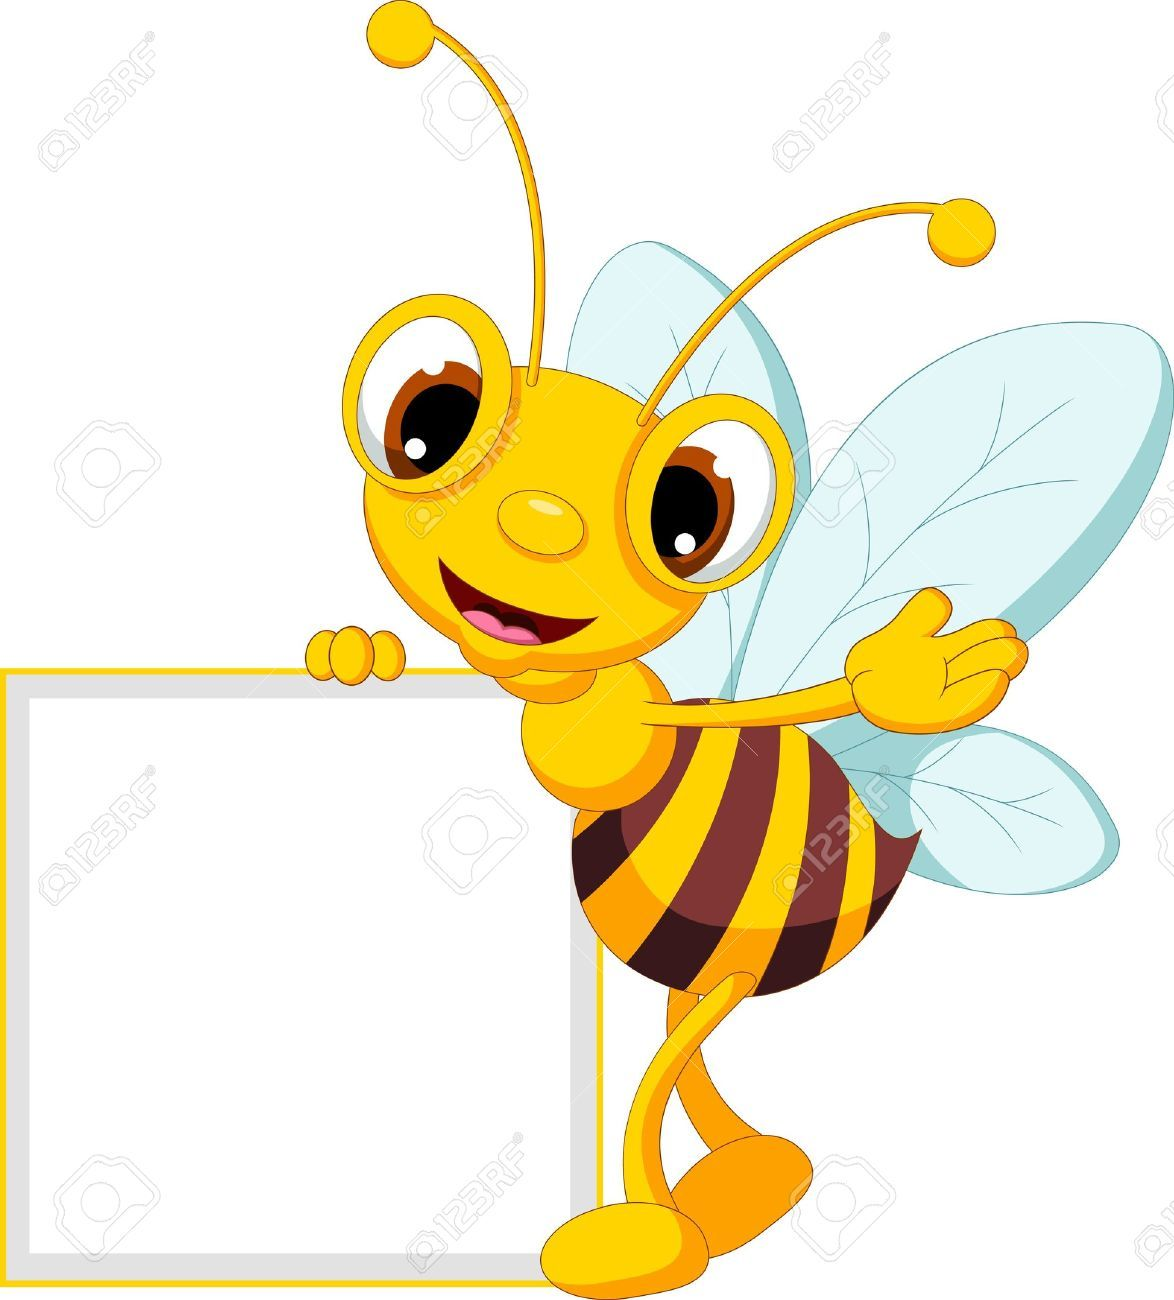 Image result for queen. Bees clipart butterfly